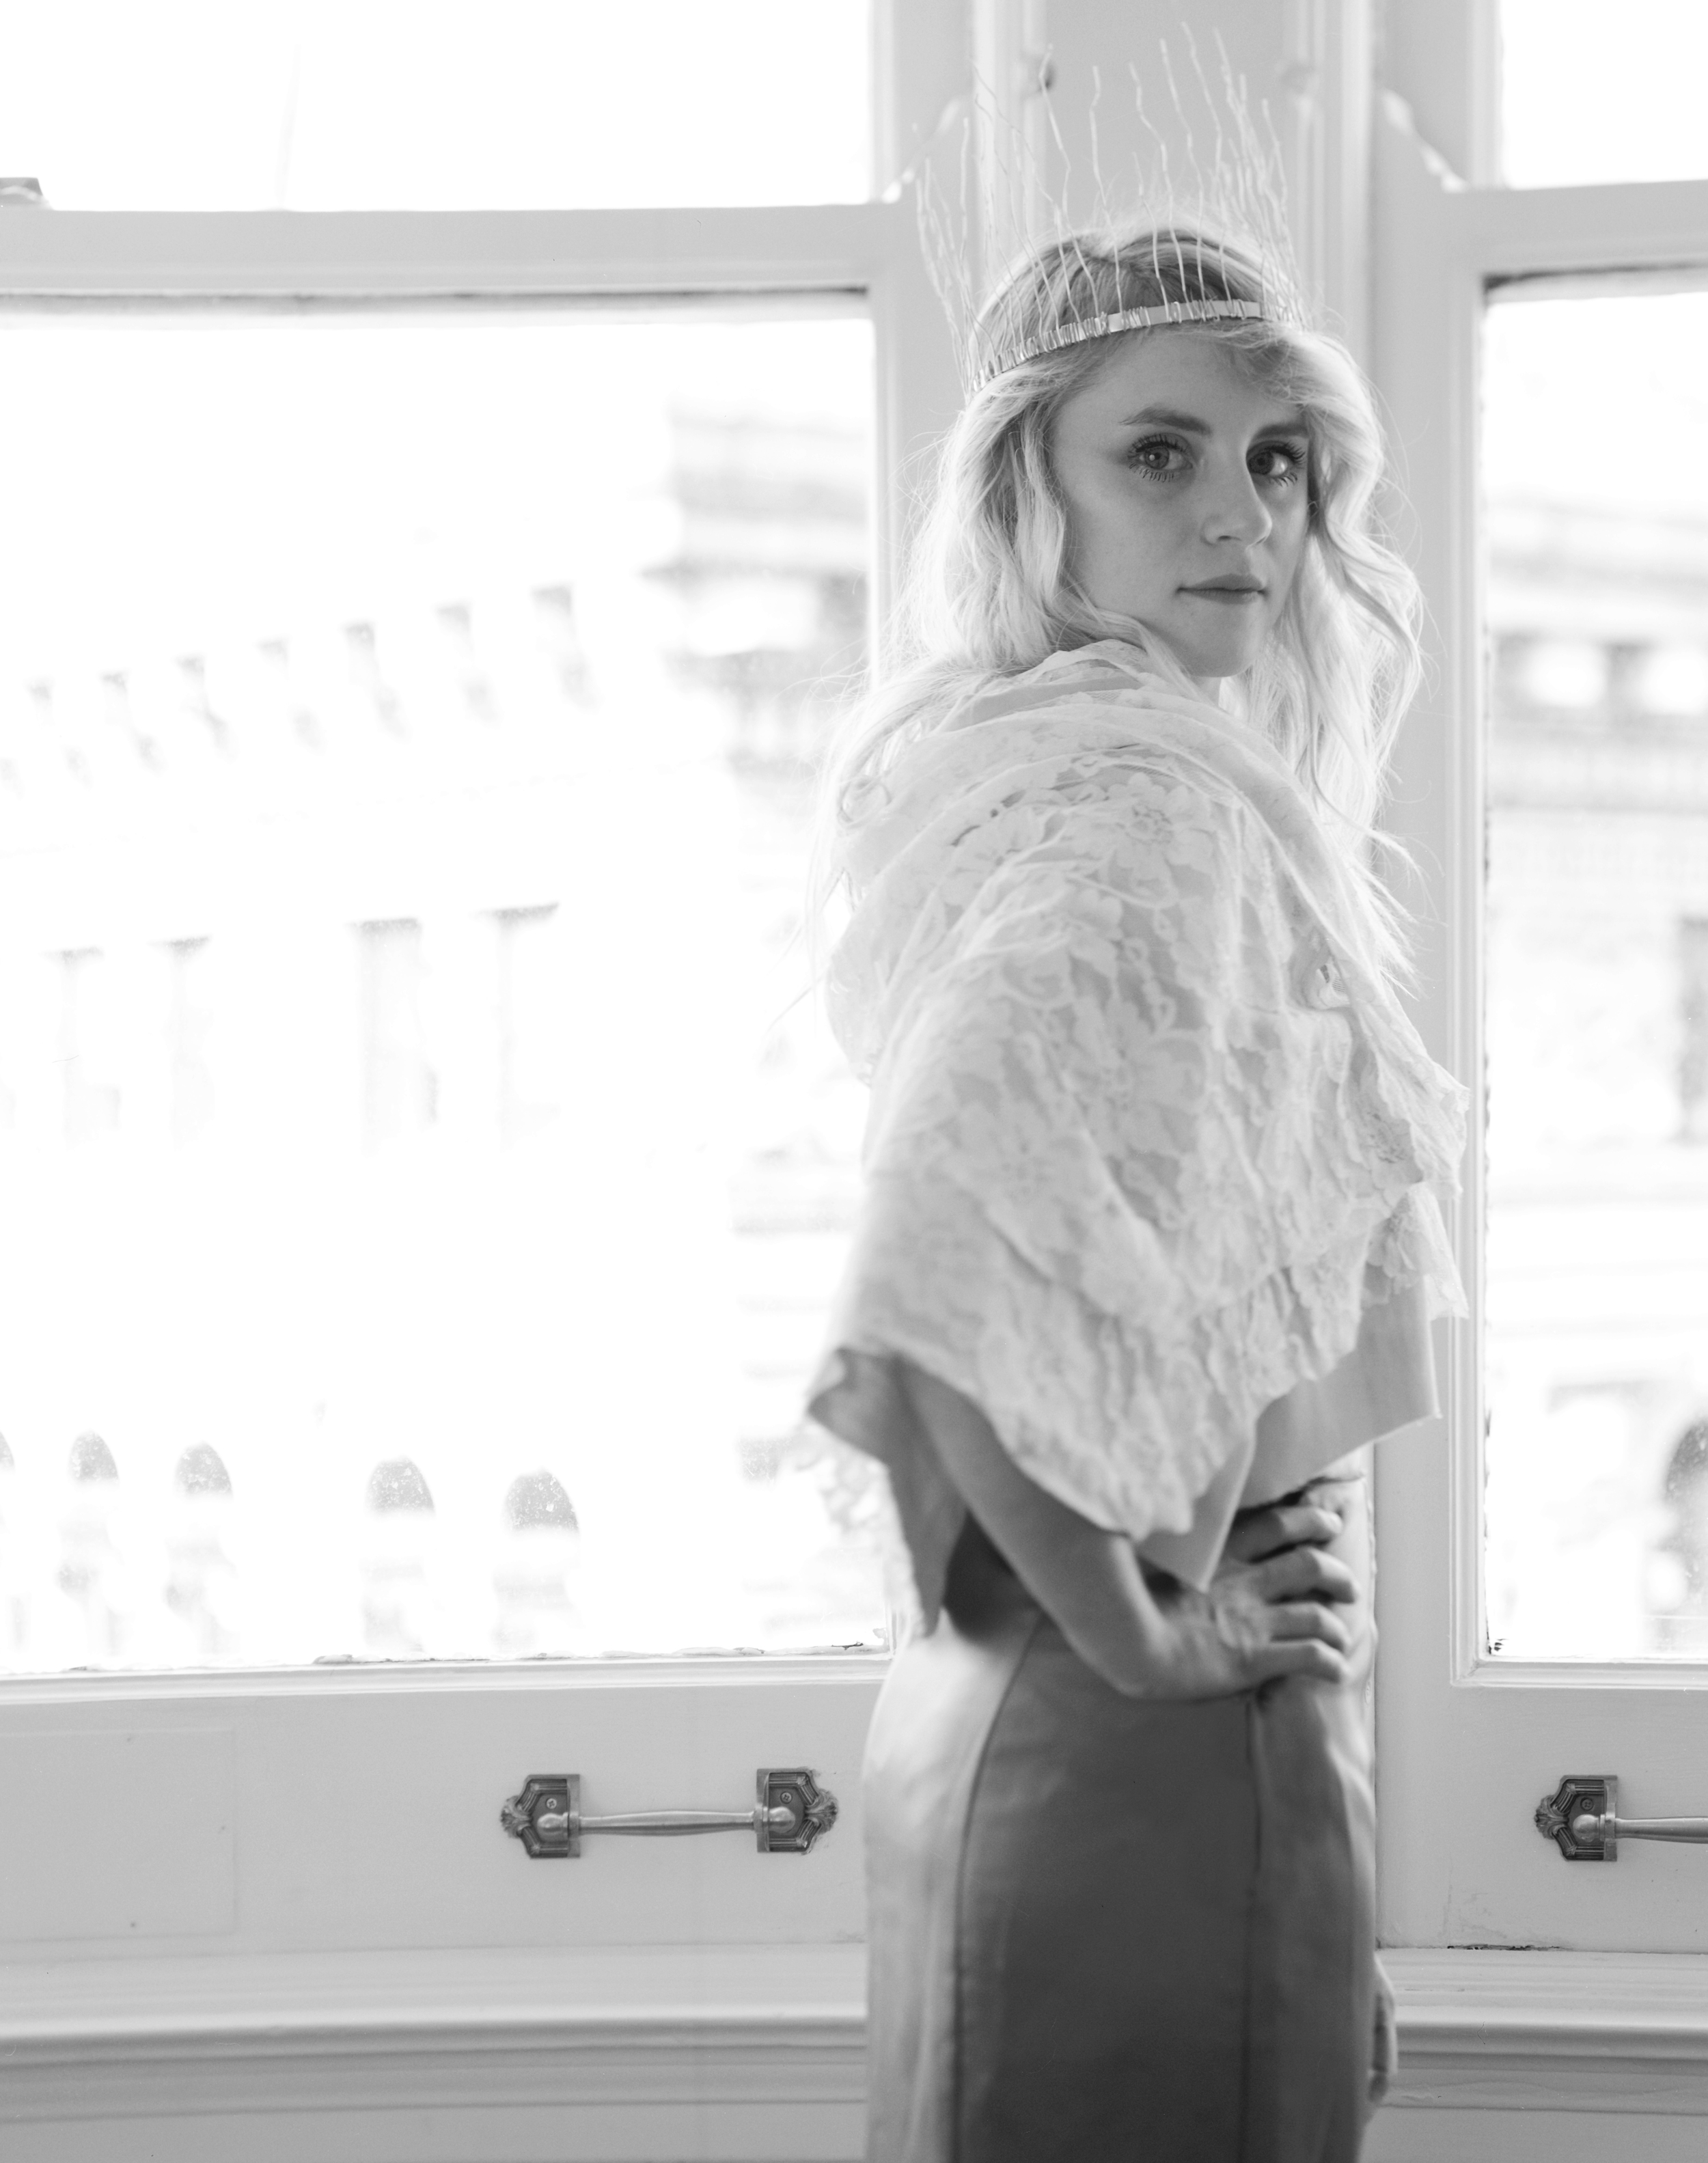 mmontana_couture_11232014_3bw.jpg